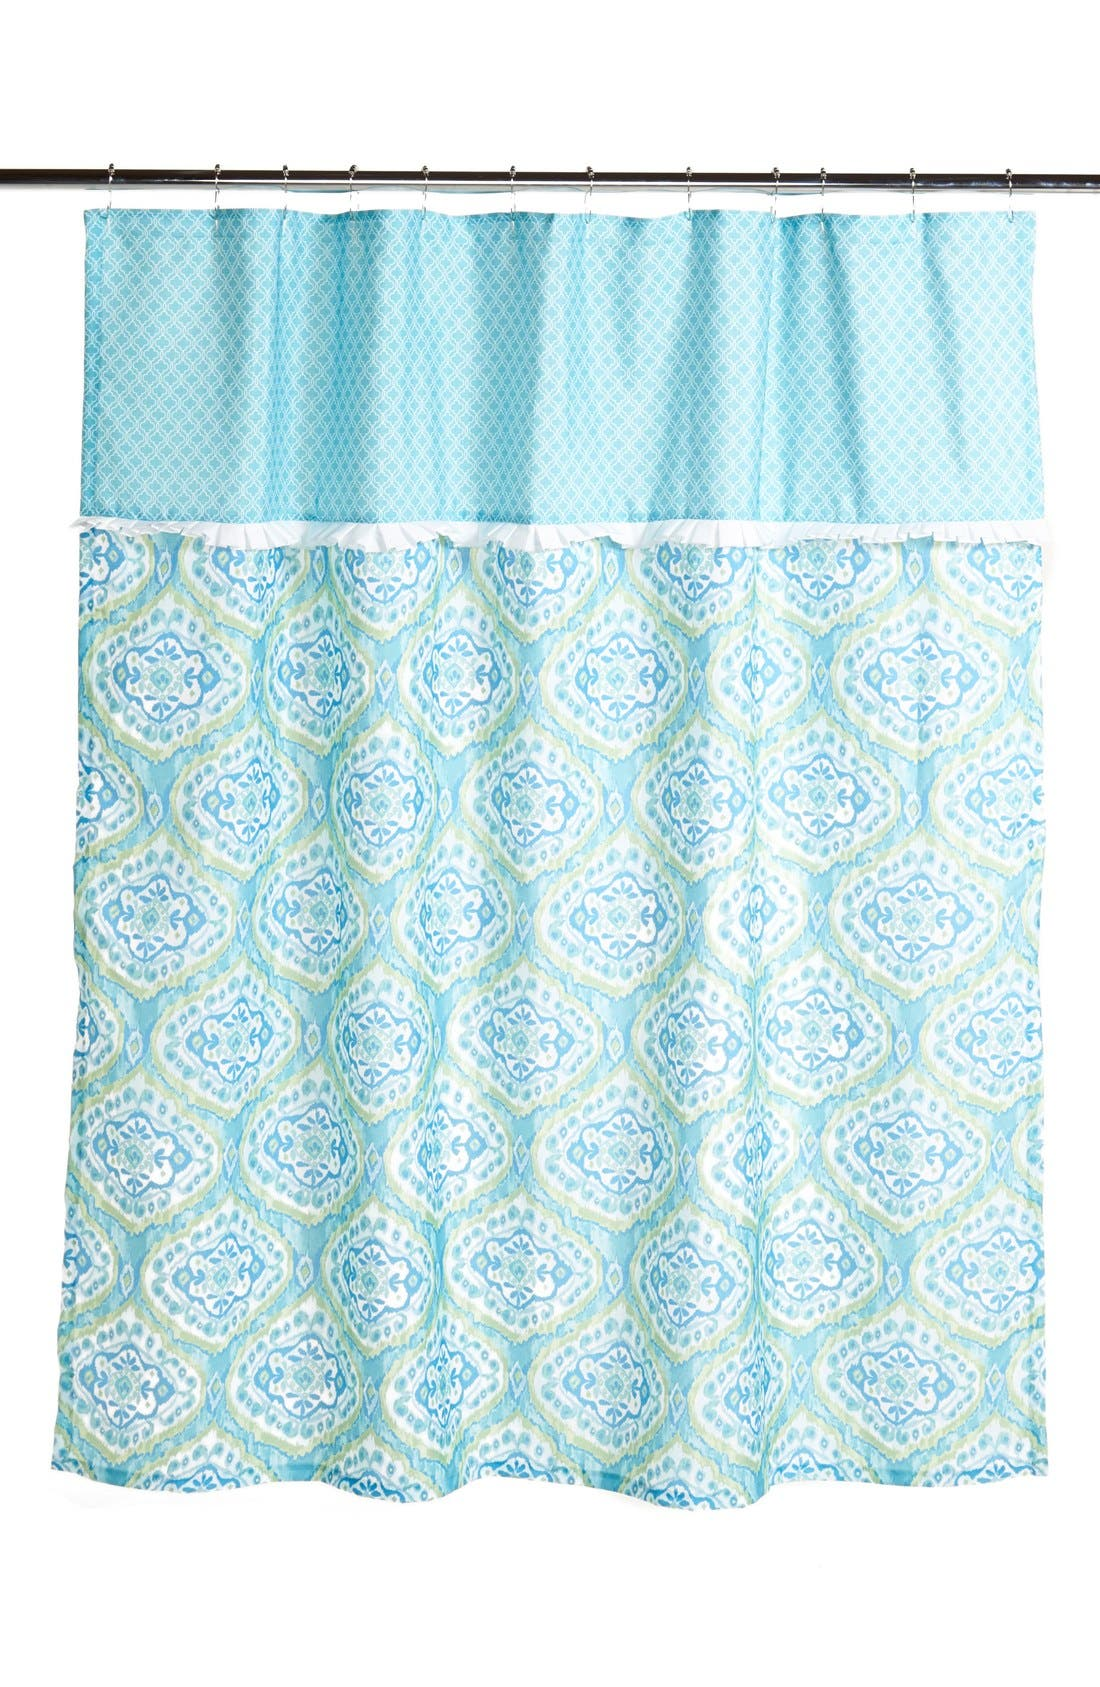 Dena Home 'Tangiers' Shower Curtain